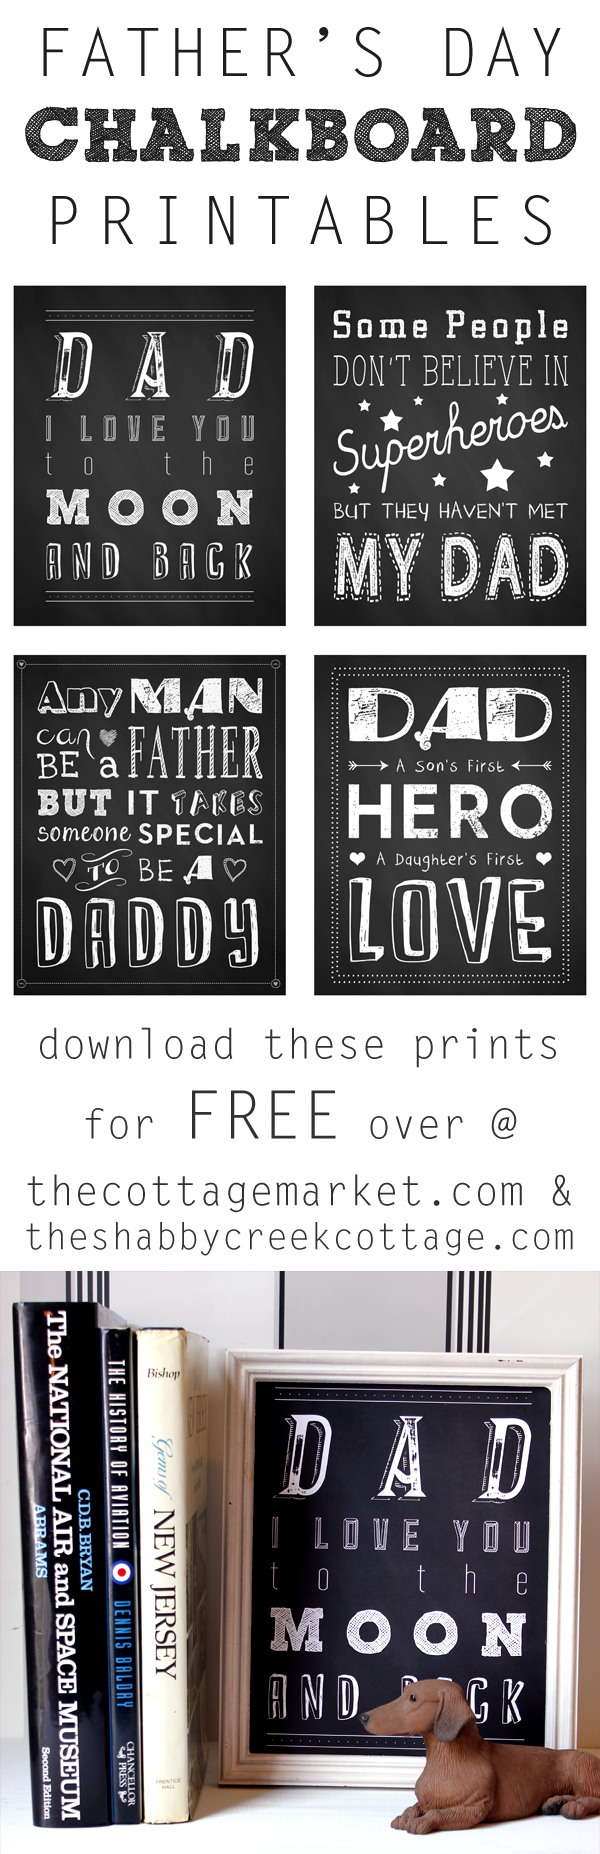 Father's Day Chalkboard Printables from The Shabby Creek Cottage